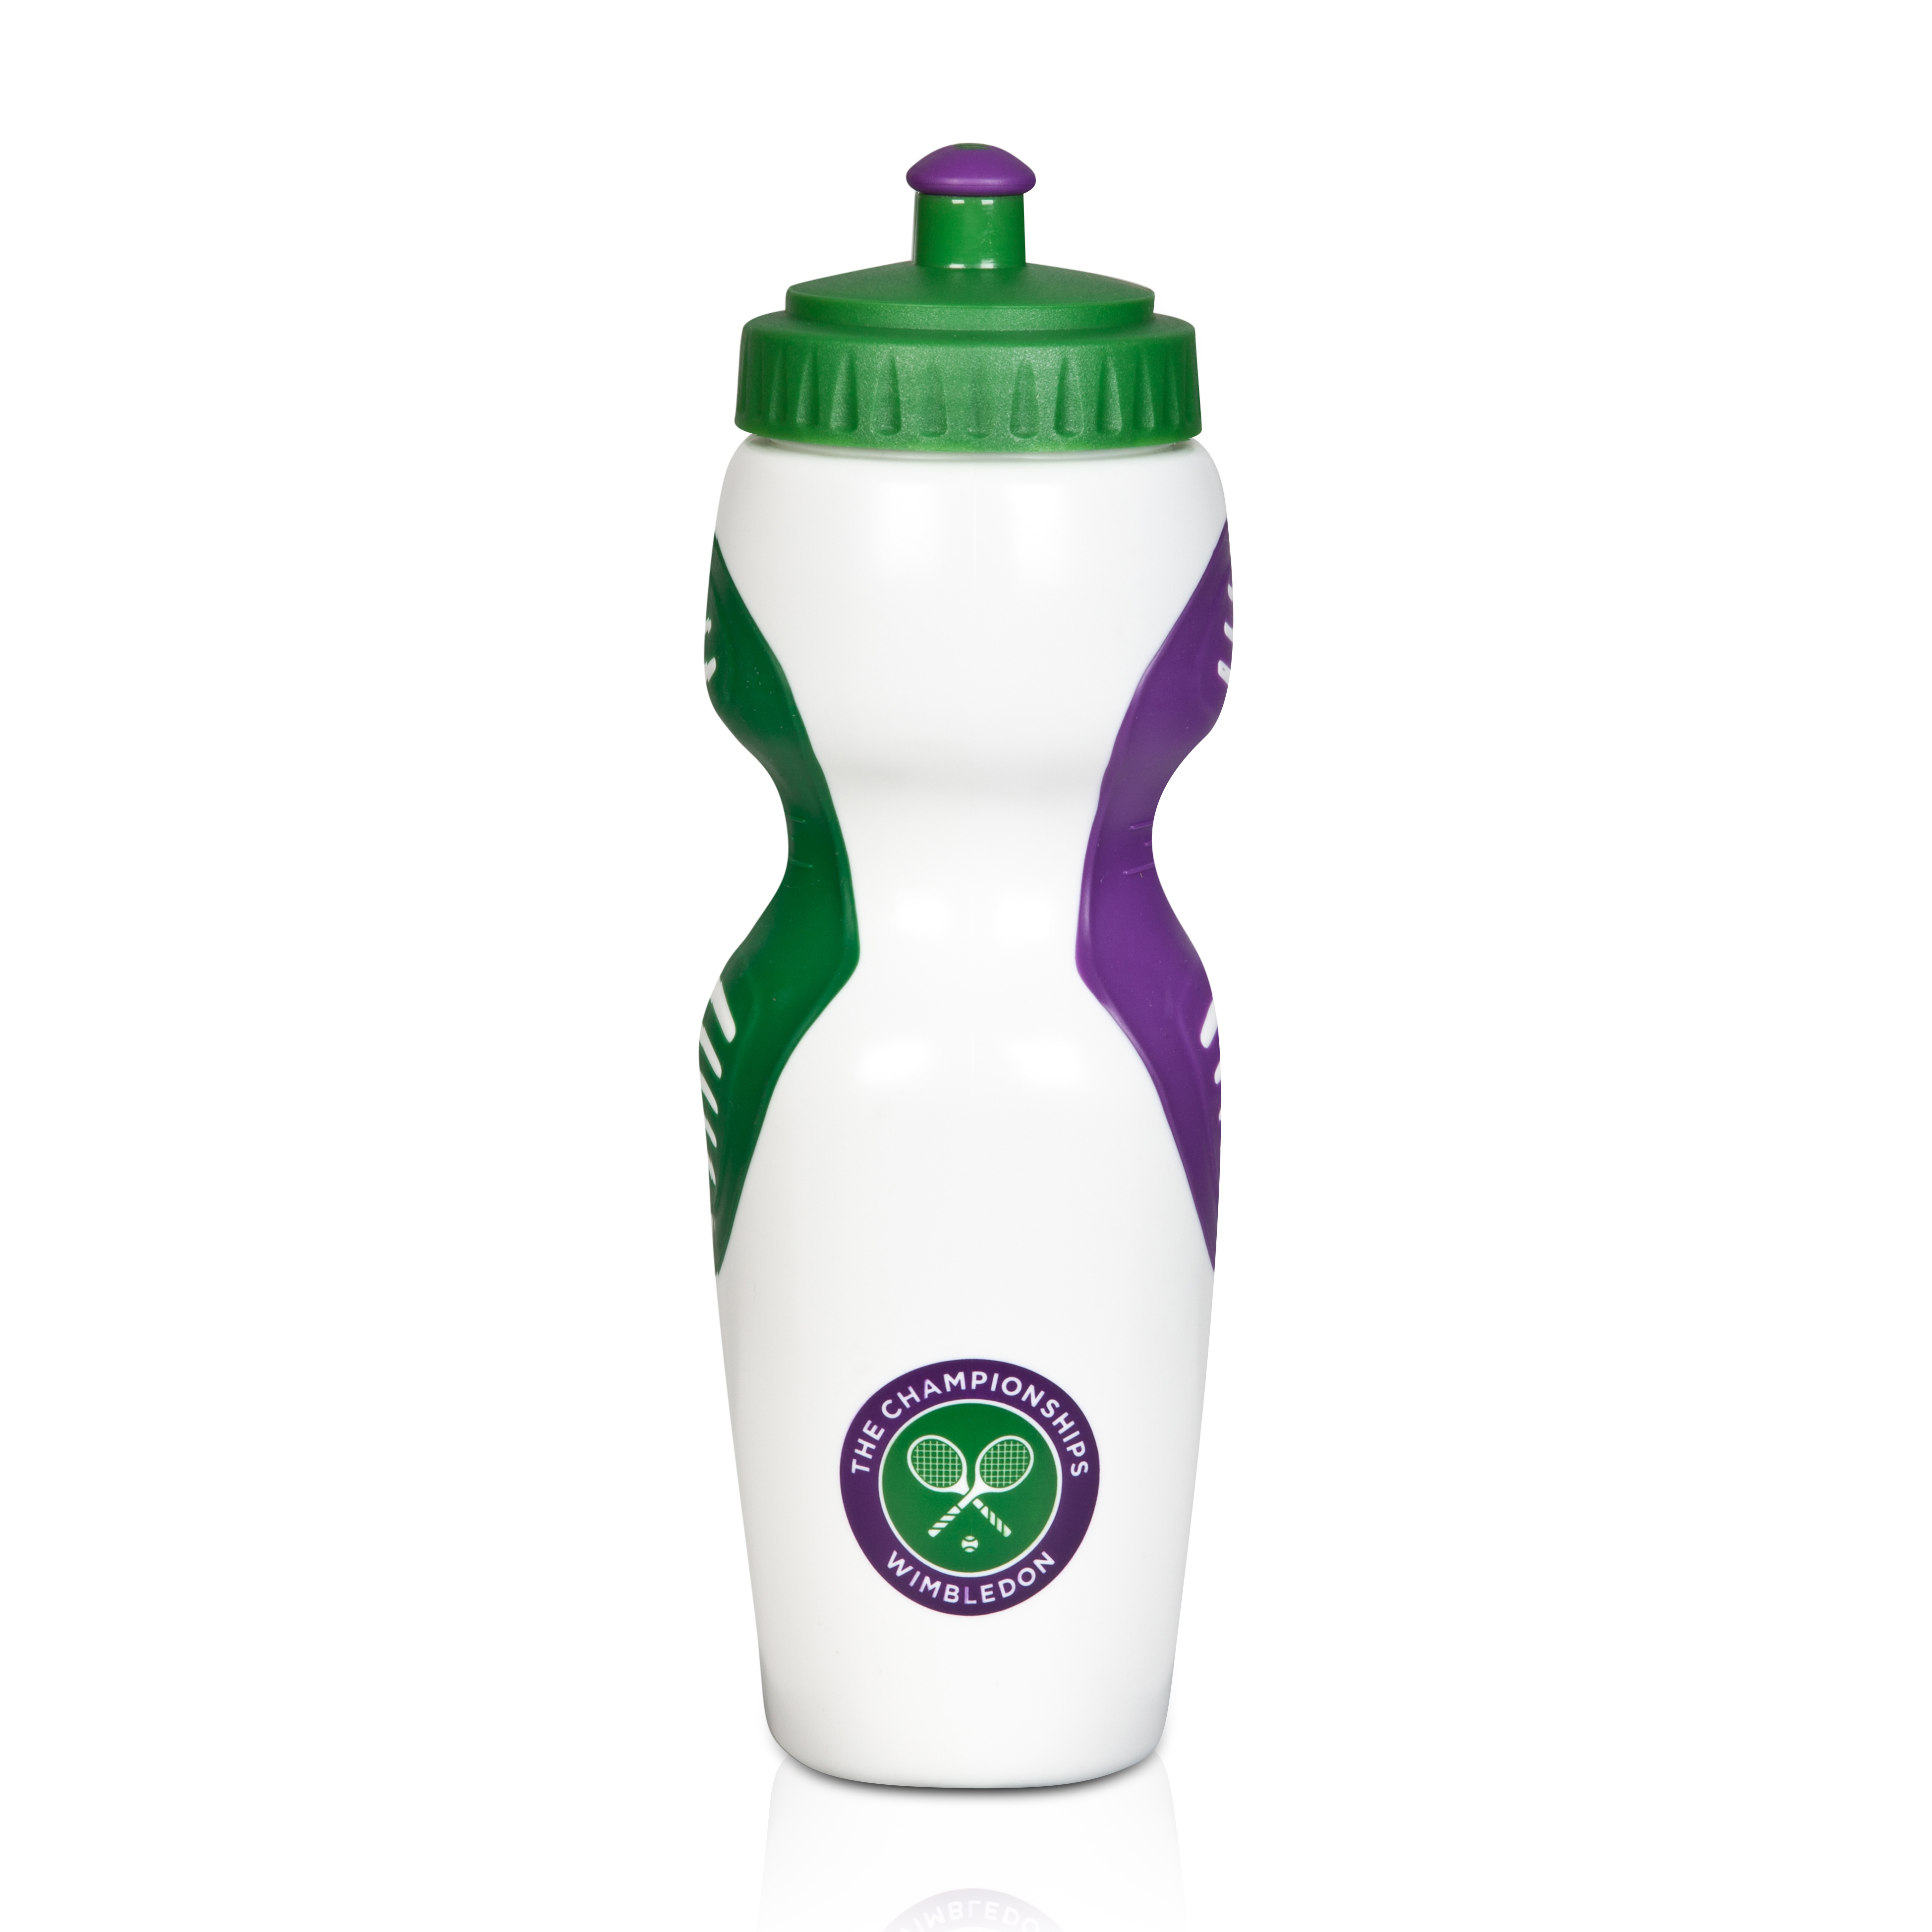 Wimbledon Plastic Sports Water Bottle - White (750ml)